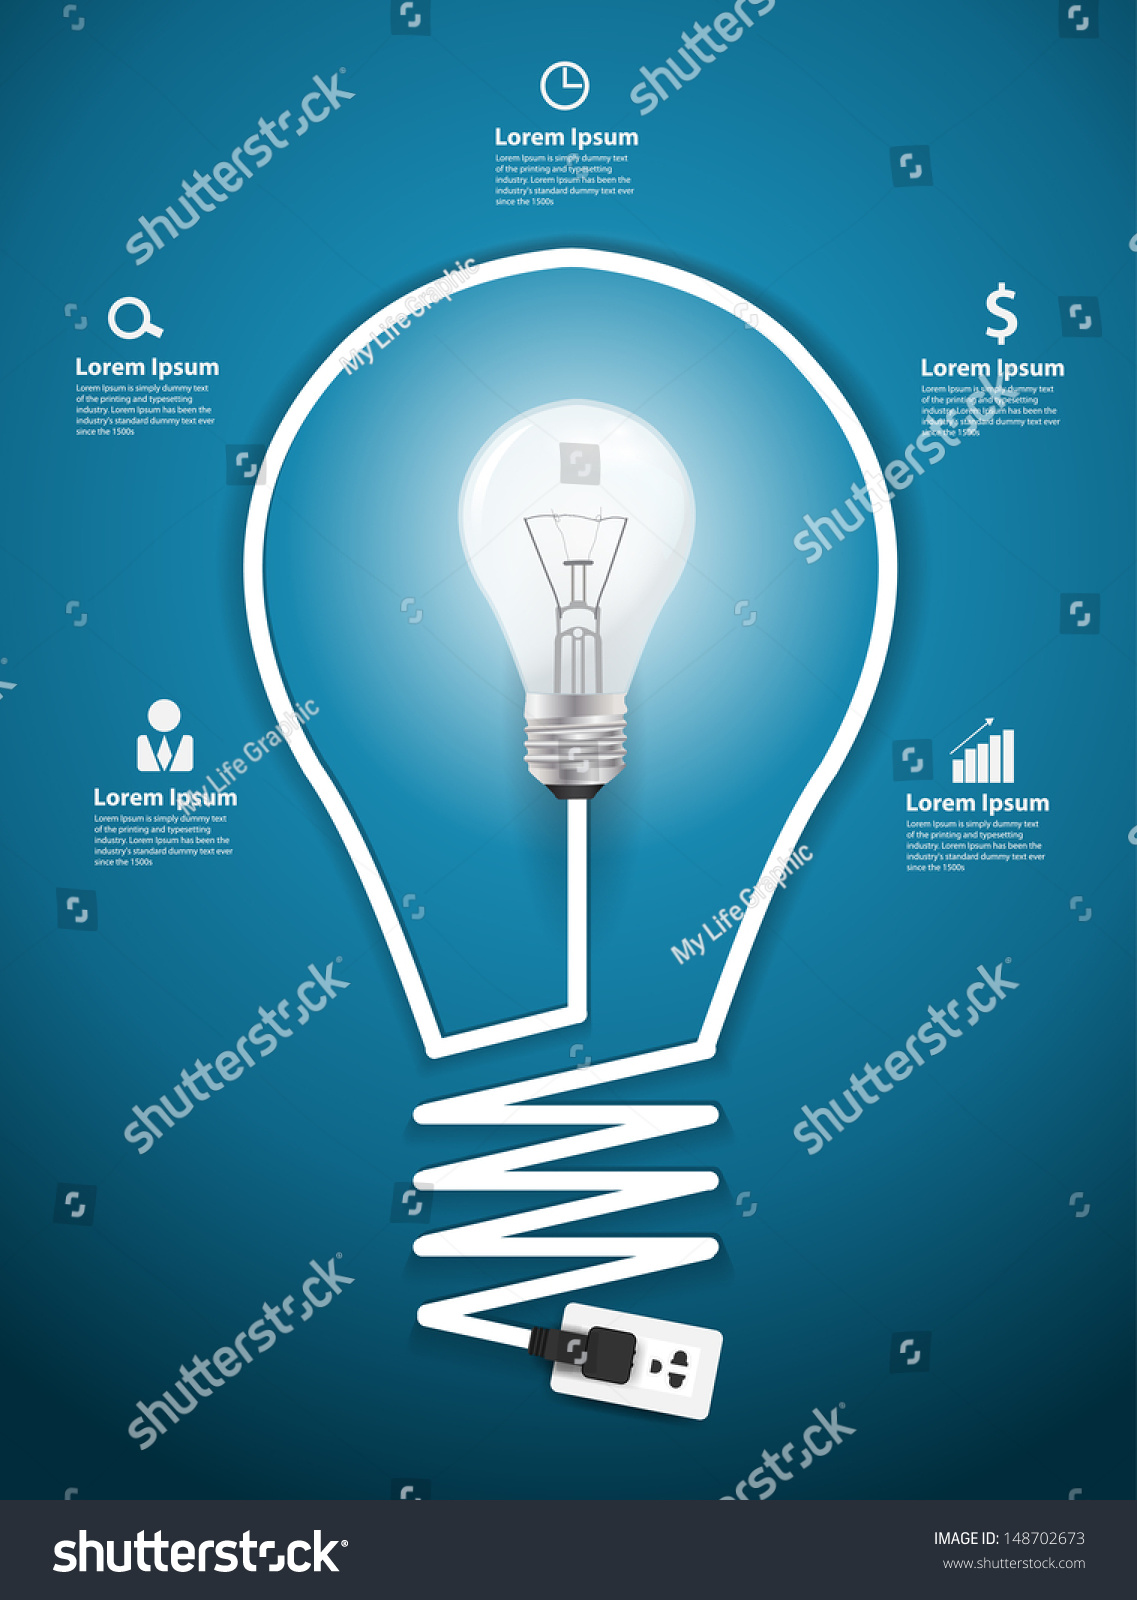 Creative Light Bulb Abstract Infographic Modern Stock Vector Diagram Of Incandescent Design Template Workflow Layout Step Up Options